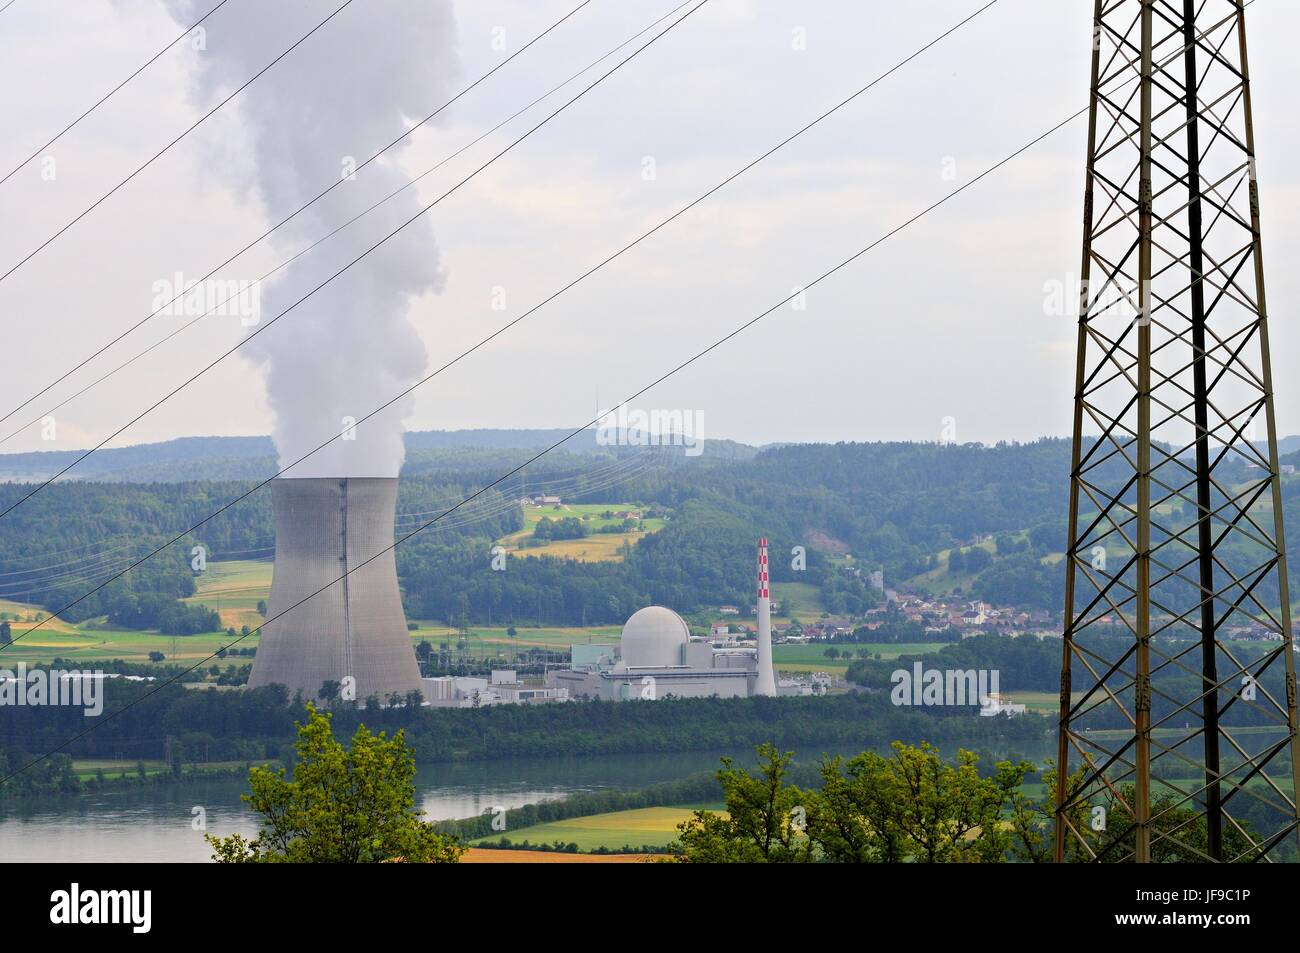 Leibstadt nuclear power plant in Switzerland Stock Photo